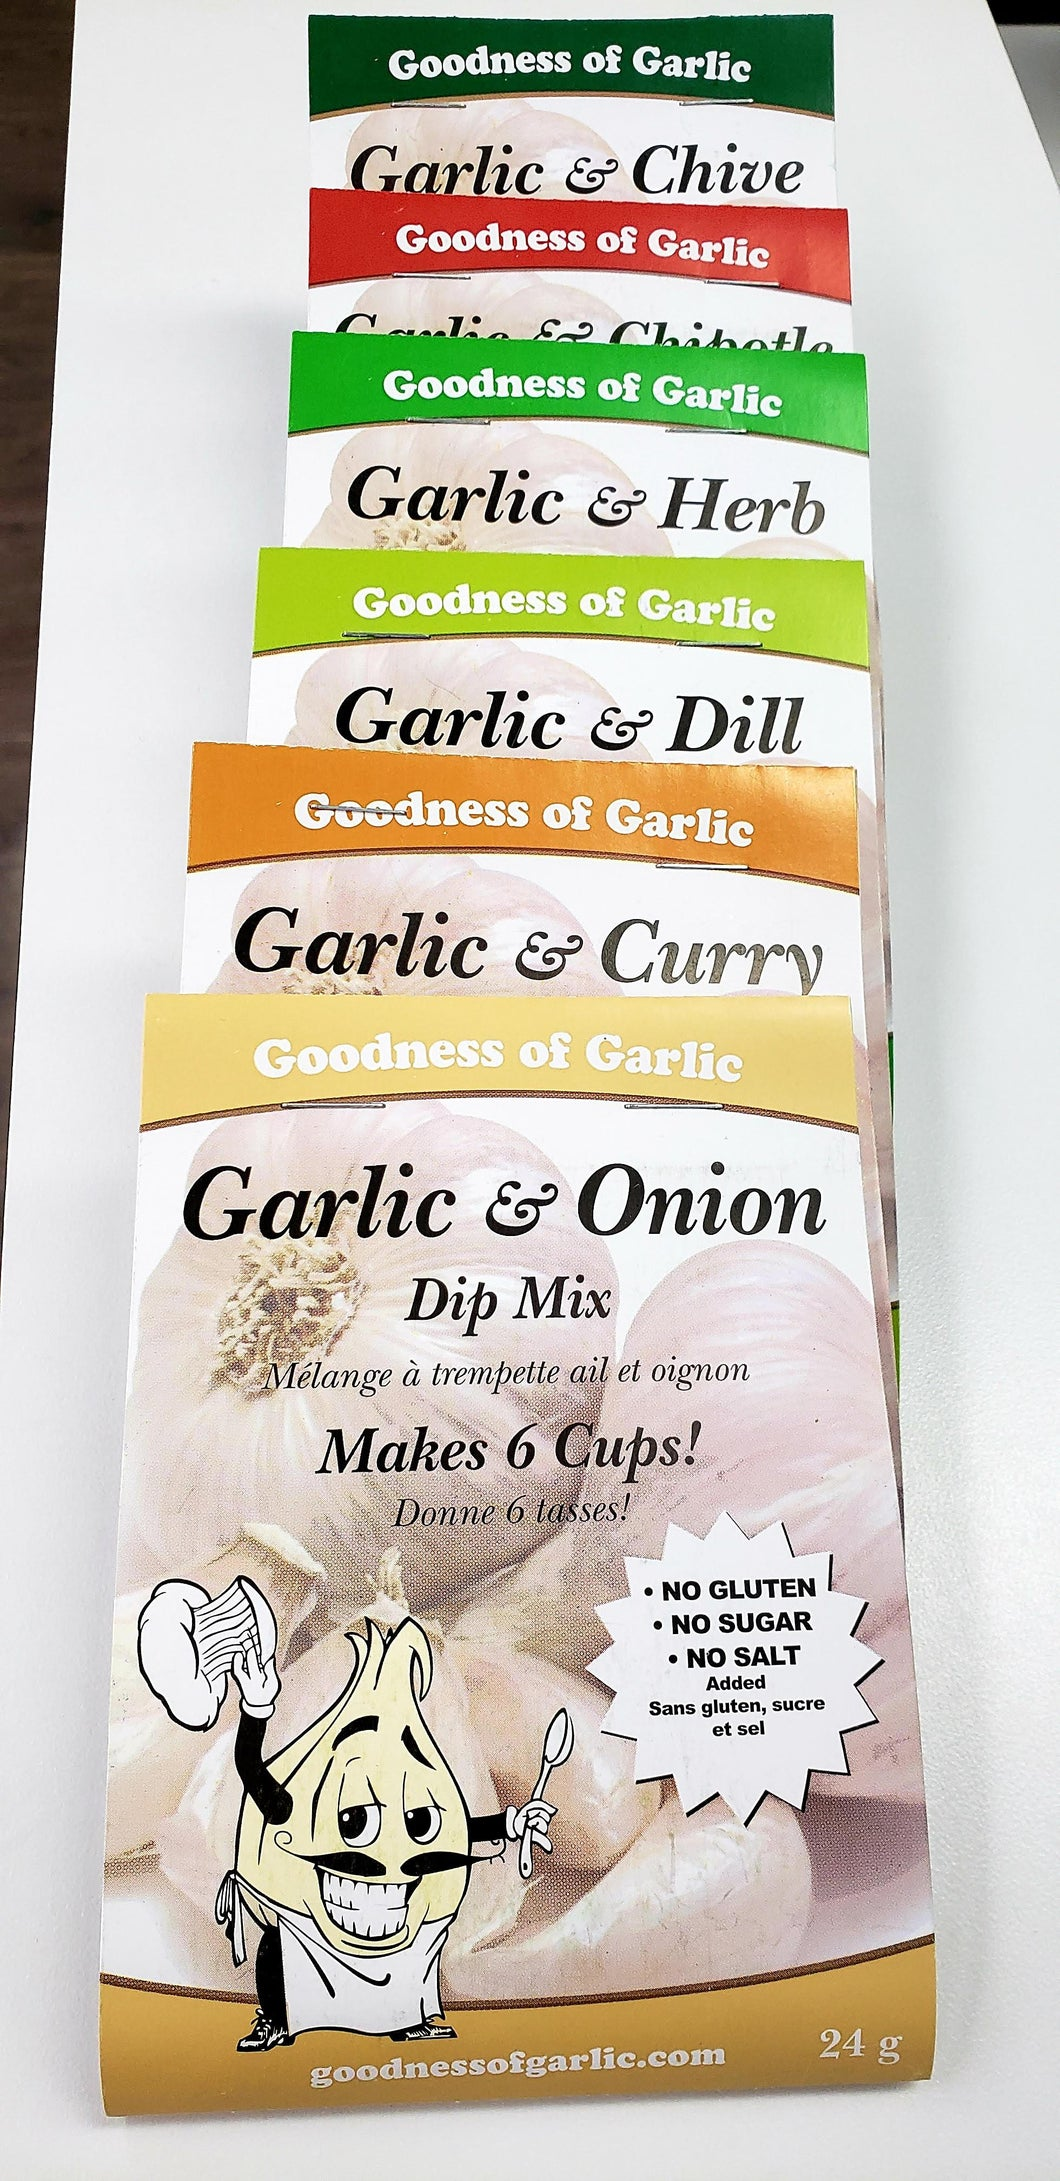 Goodness of Garlic Dip Mix